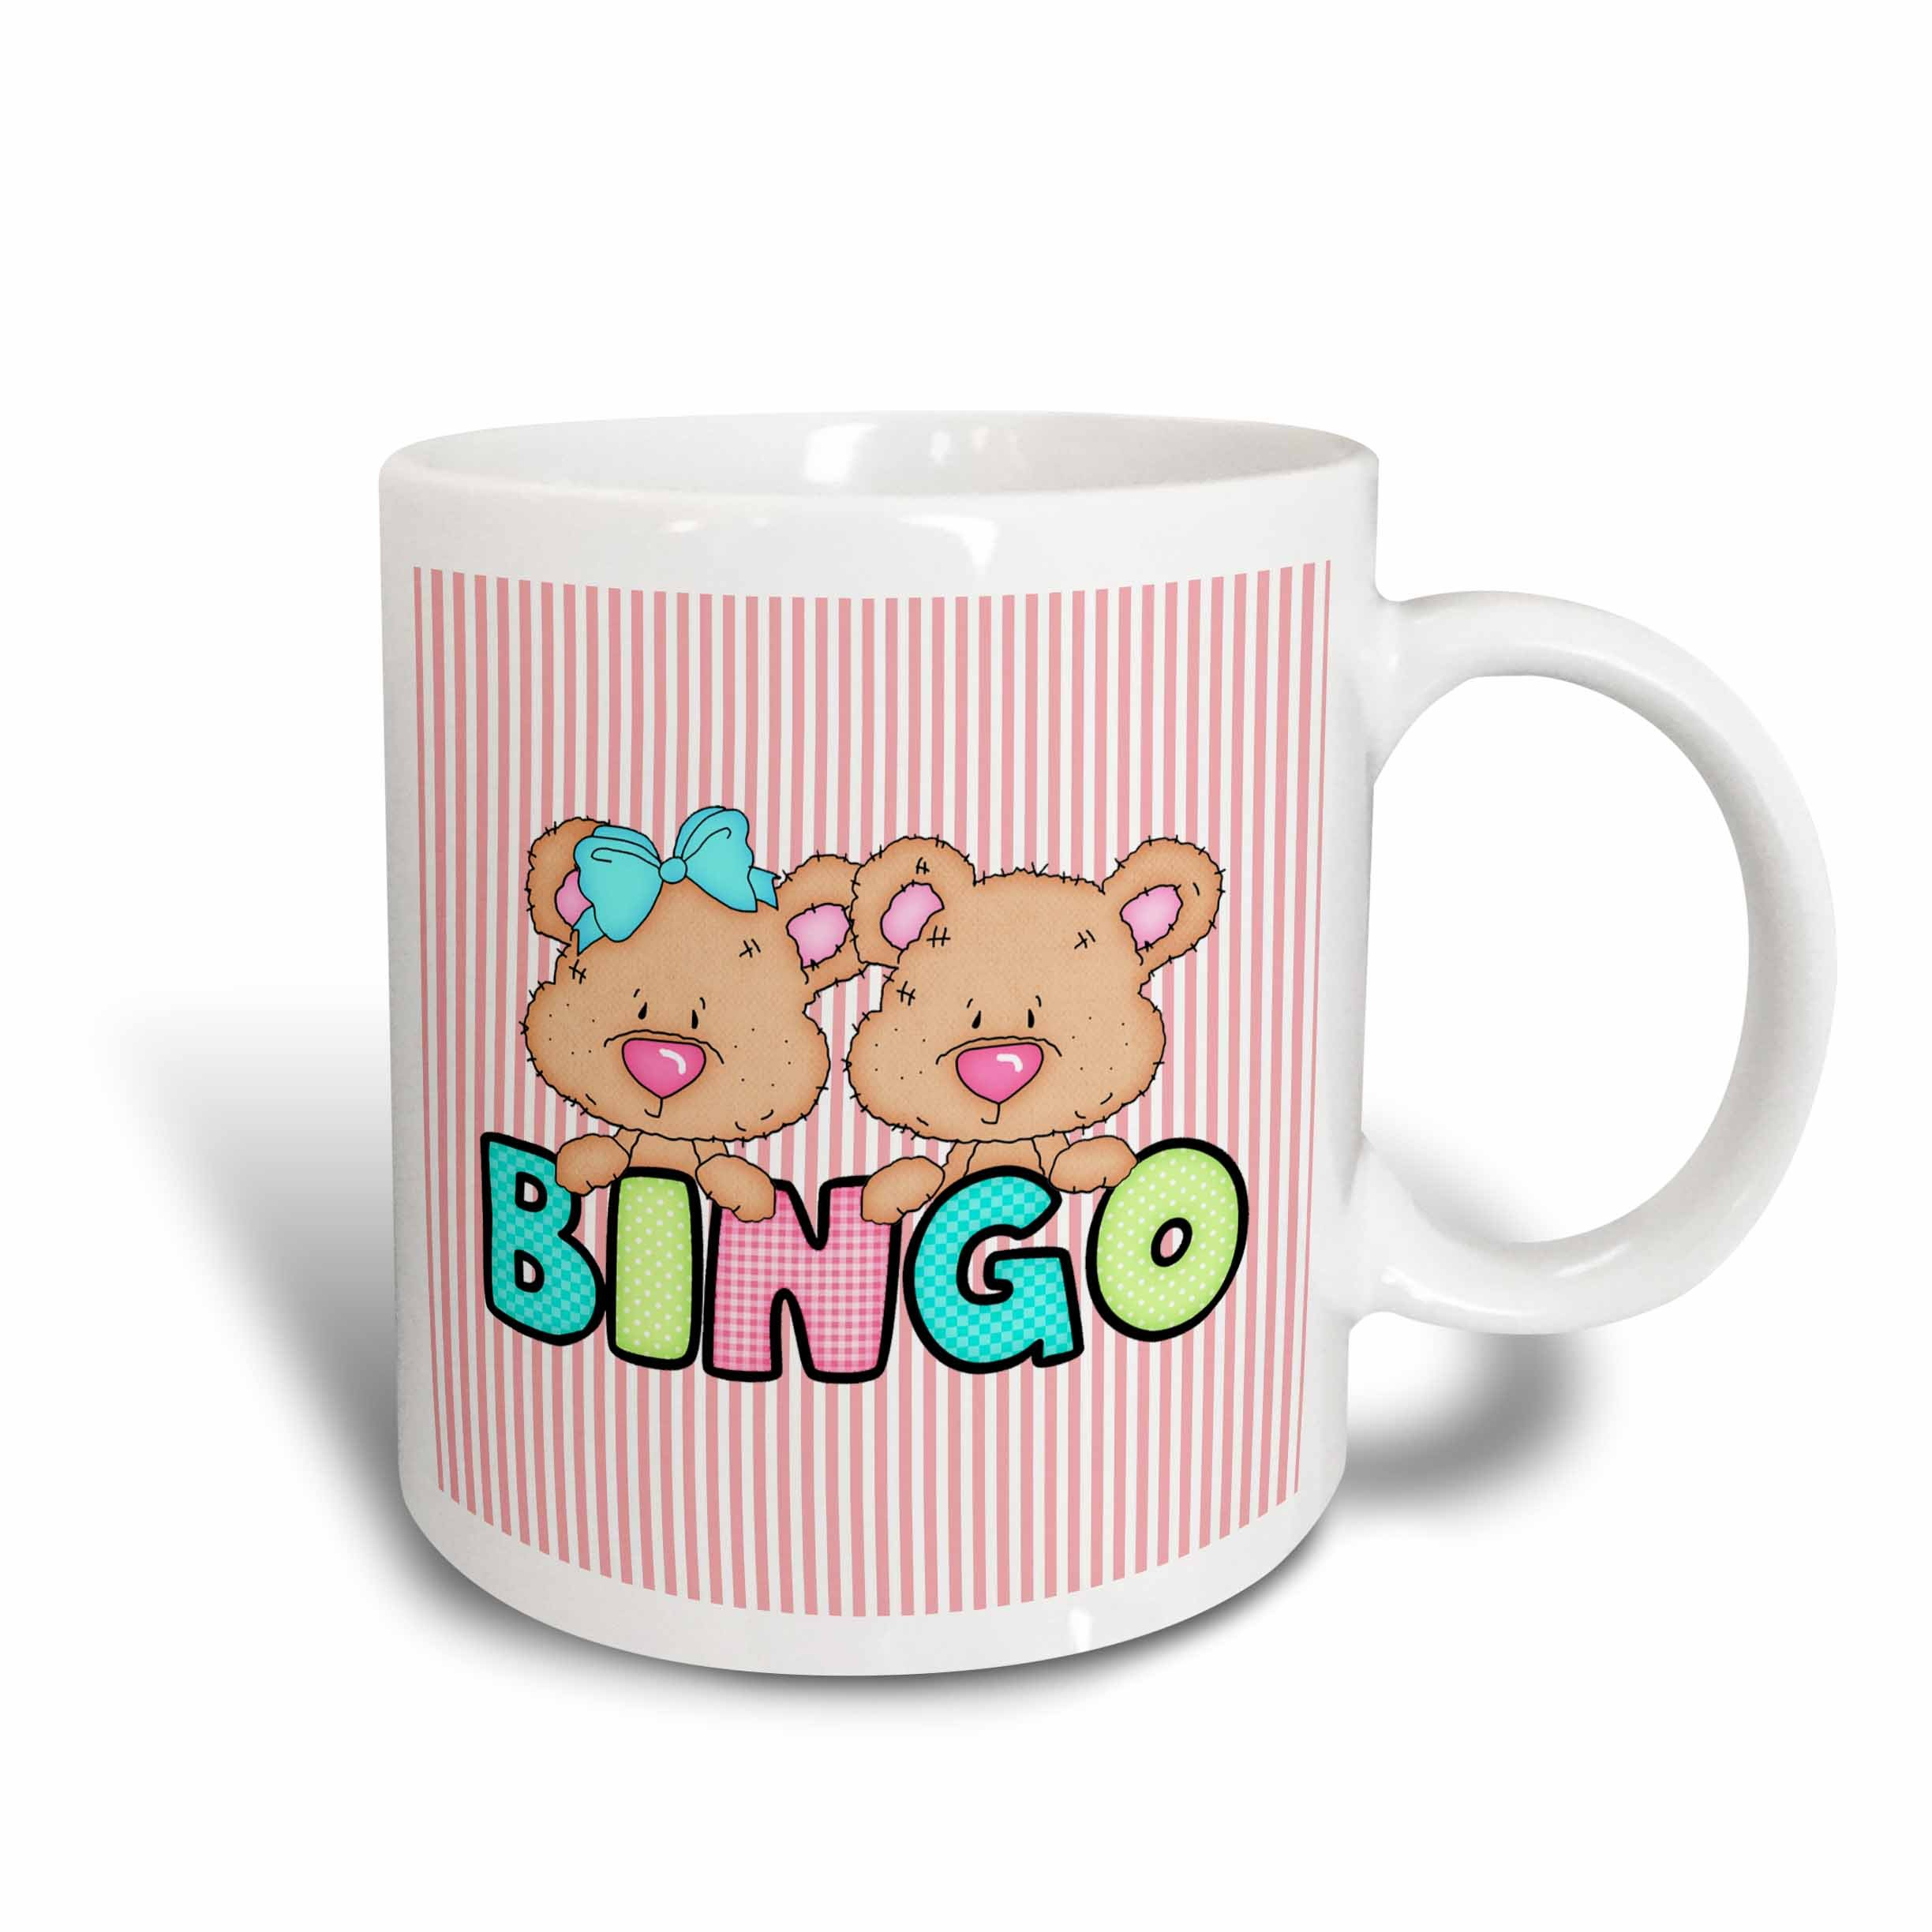 3dRose Cute Bingo Bears with Text on Striped Background Ceramic Mug, 15-Ounce by 3dRose